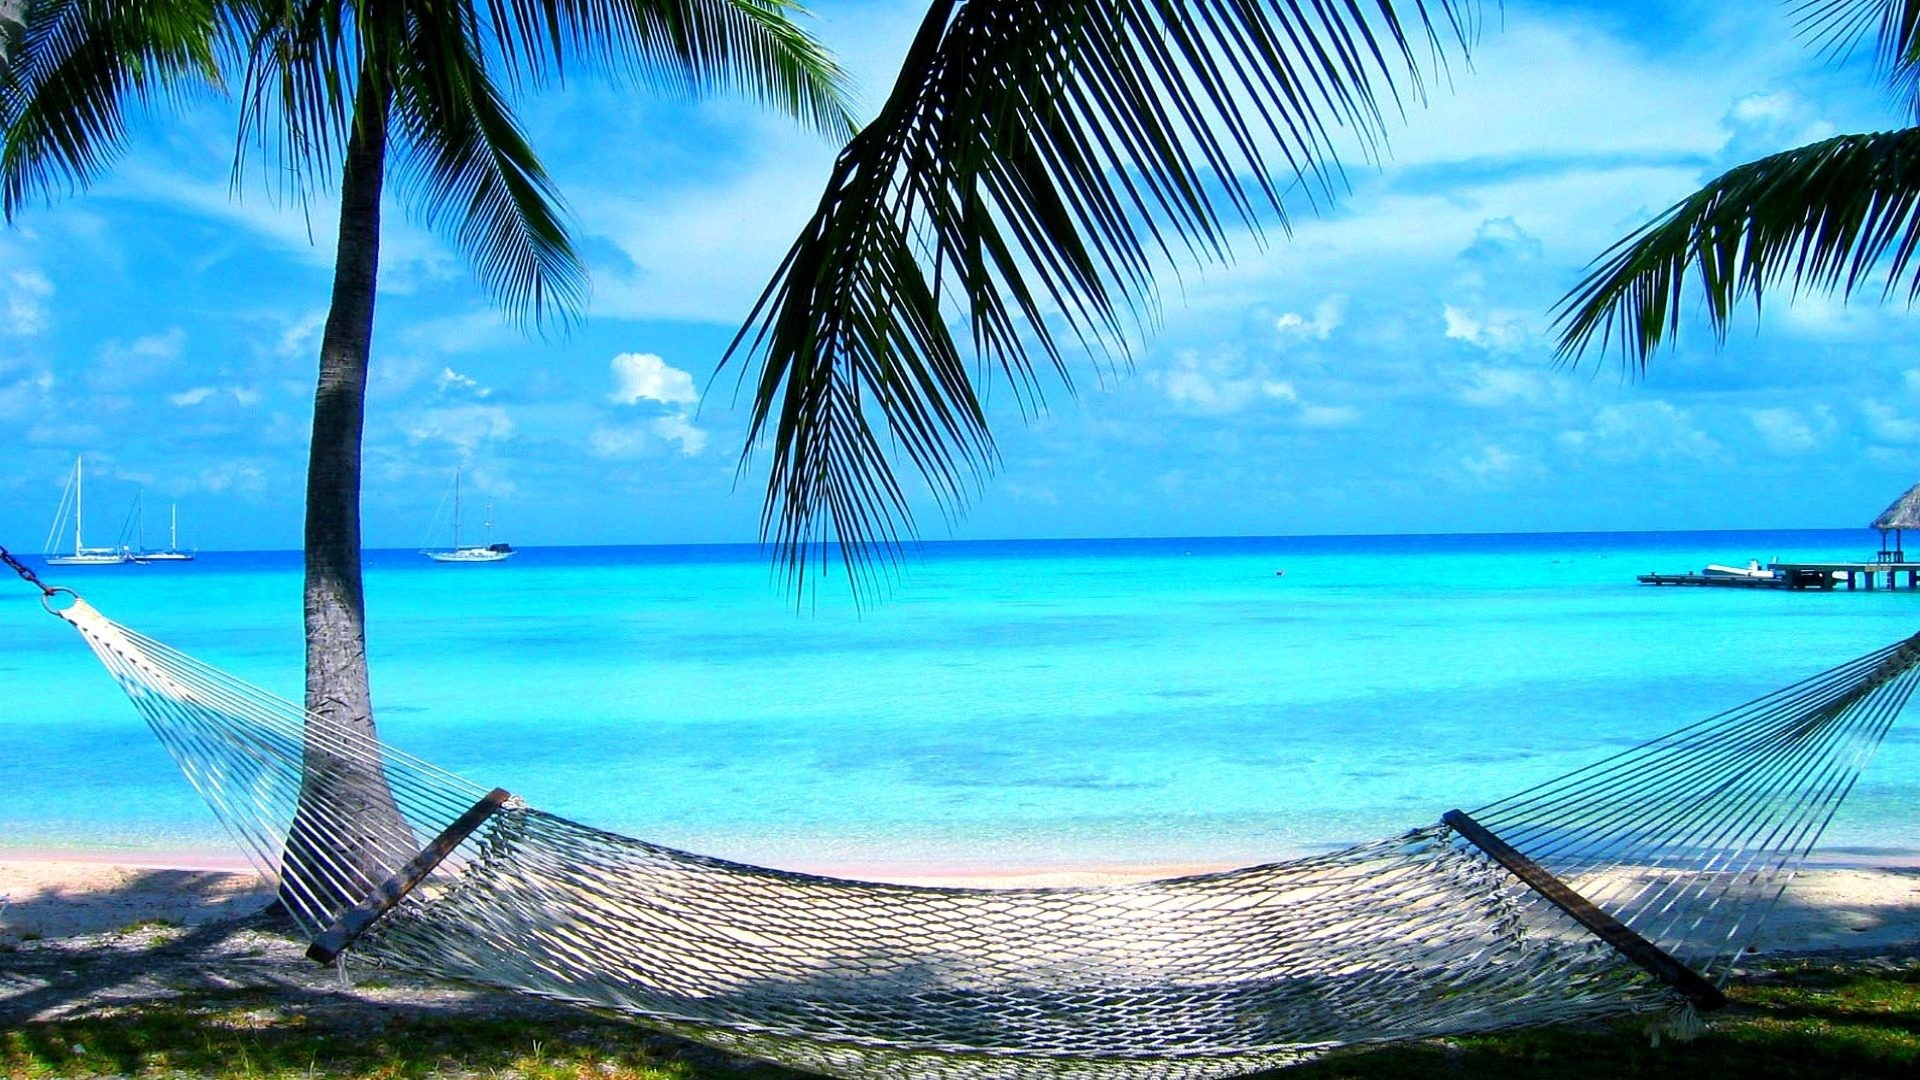 1920x1080 Palms Beach Hammock Sea Relaxation Summer Desktop Wallpaper